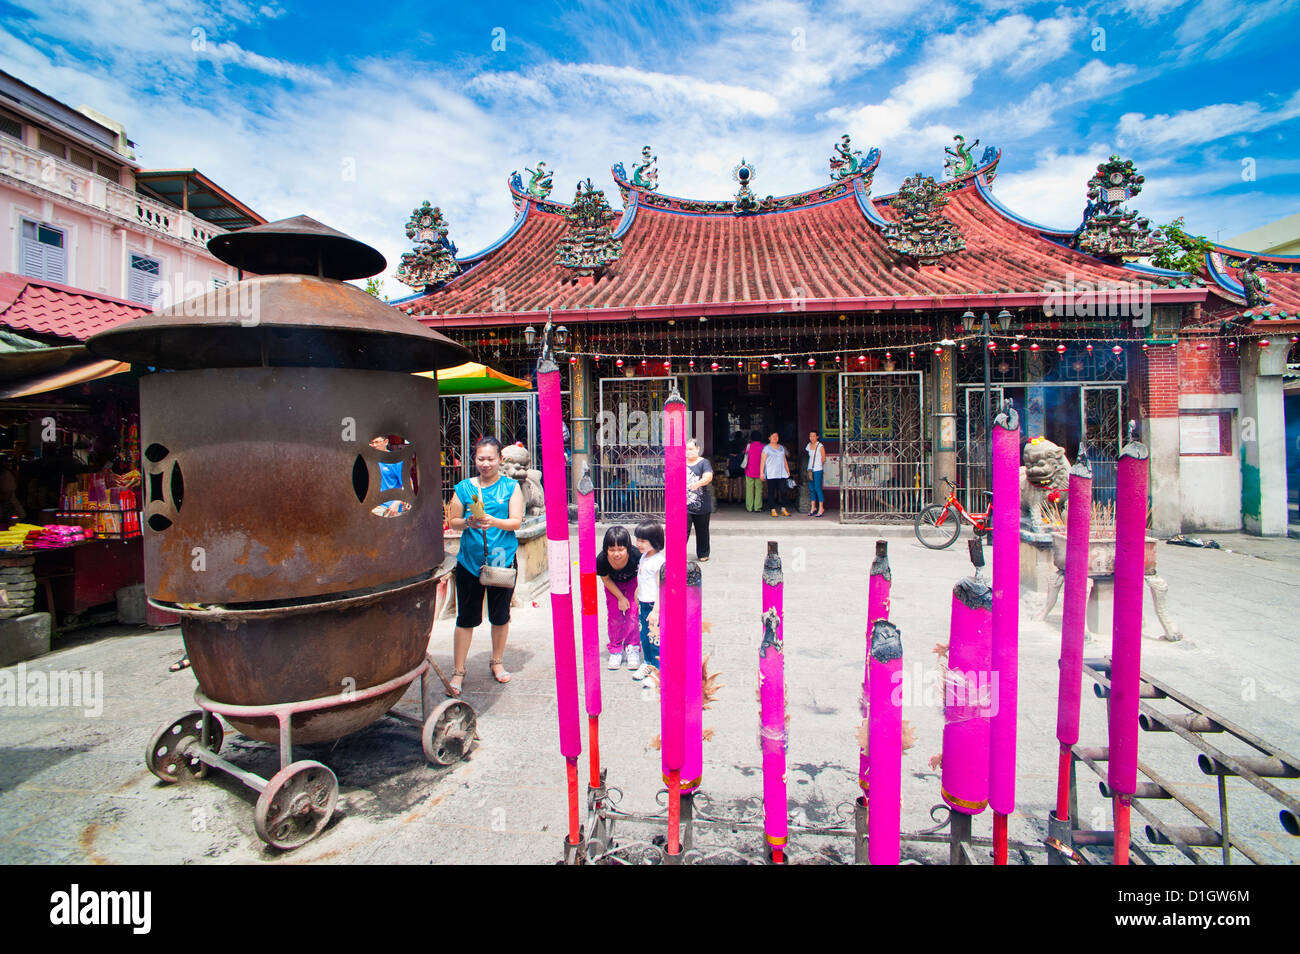 Malaysian people praying behind large incense sticks at a Buddhist temple in George Town, Penang, Malaysia, Southeast Stock Photo